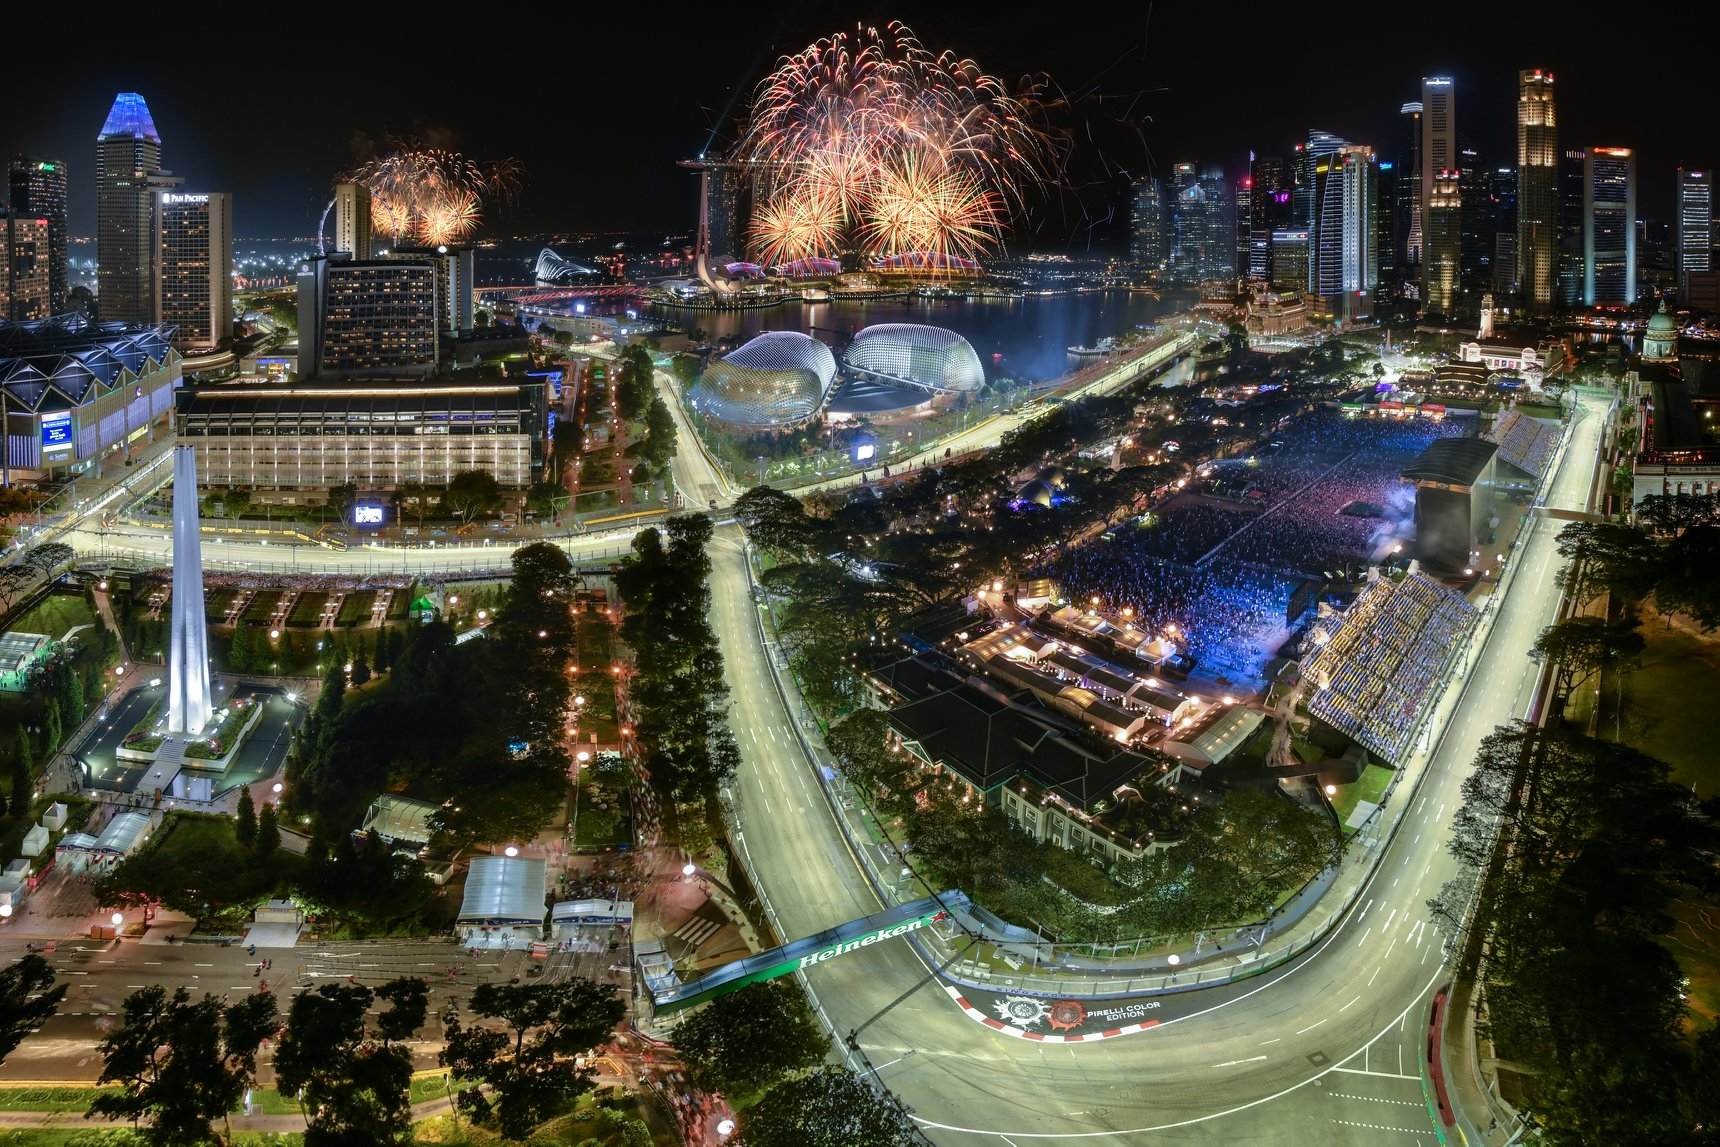 Swedish House Mafia to Headline Singapore F1 Grand Prix Concert